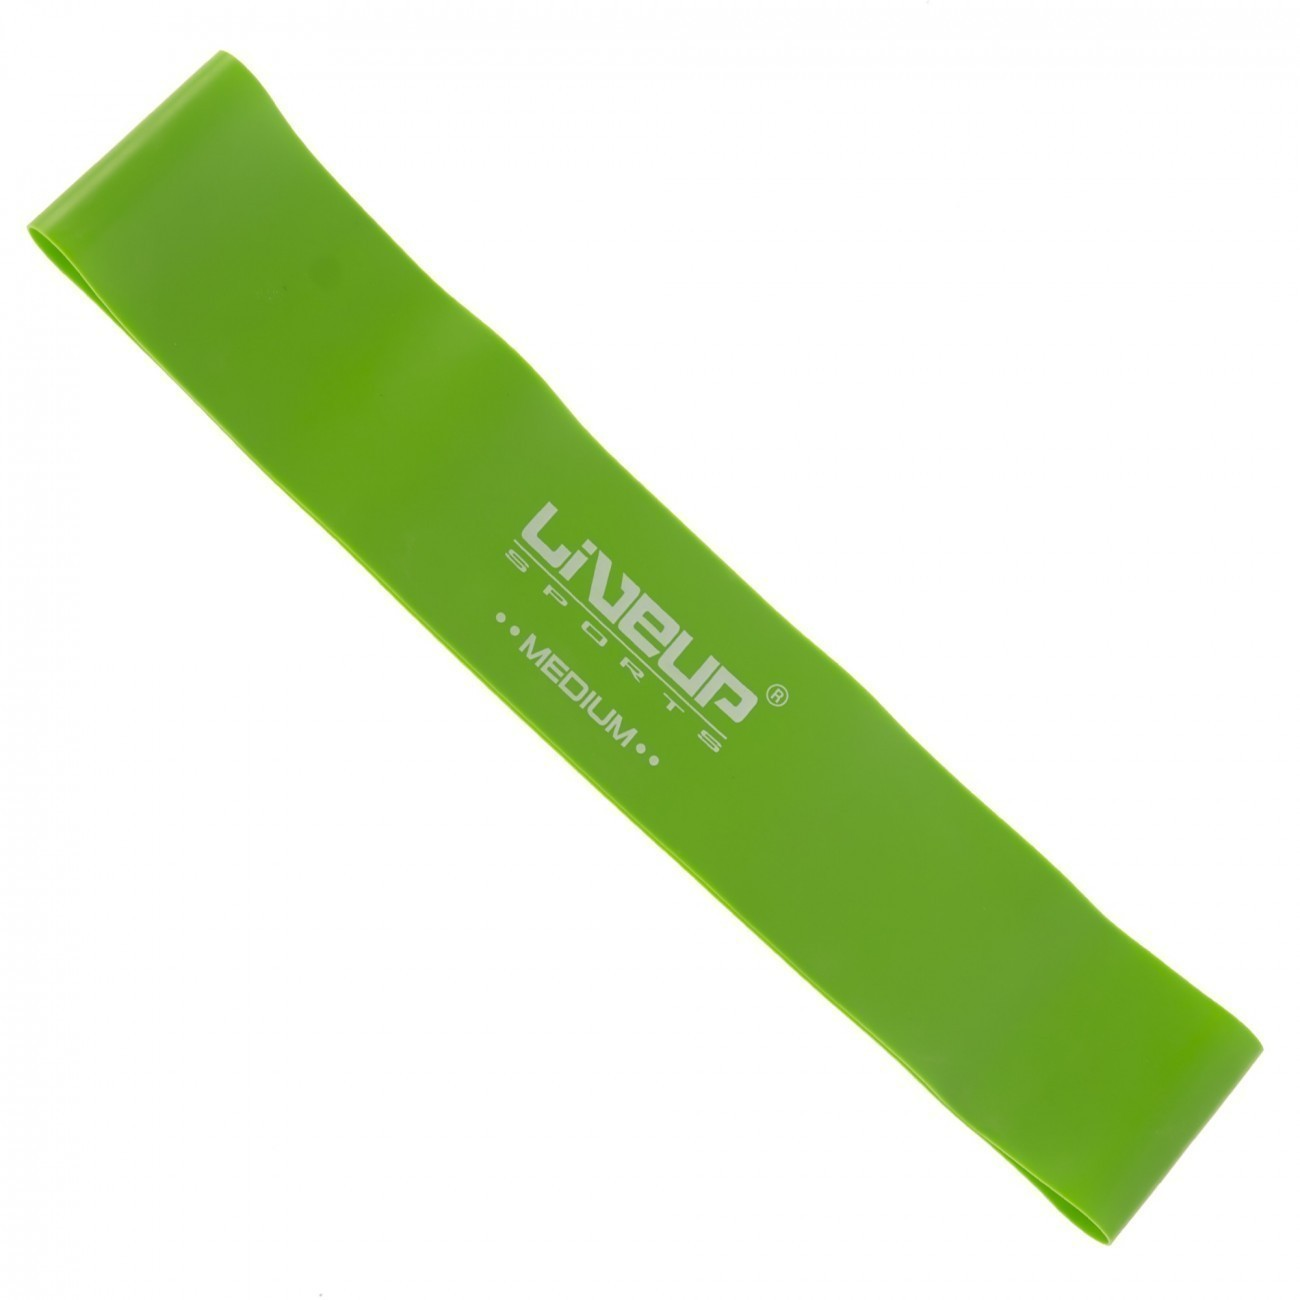 MINI BANDS 2 - MÉDIA - 25*5*0,06 CM - LIVEUP SPORTS